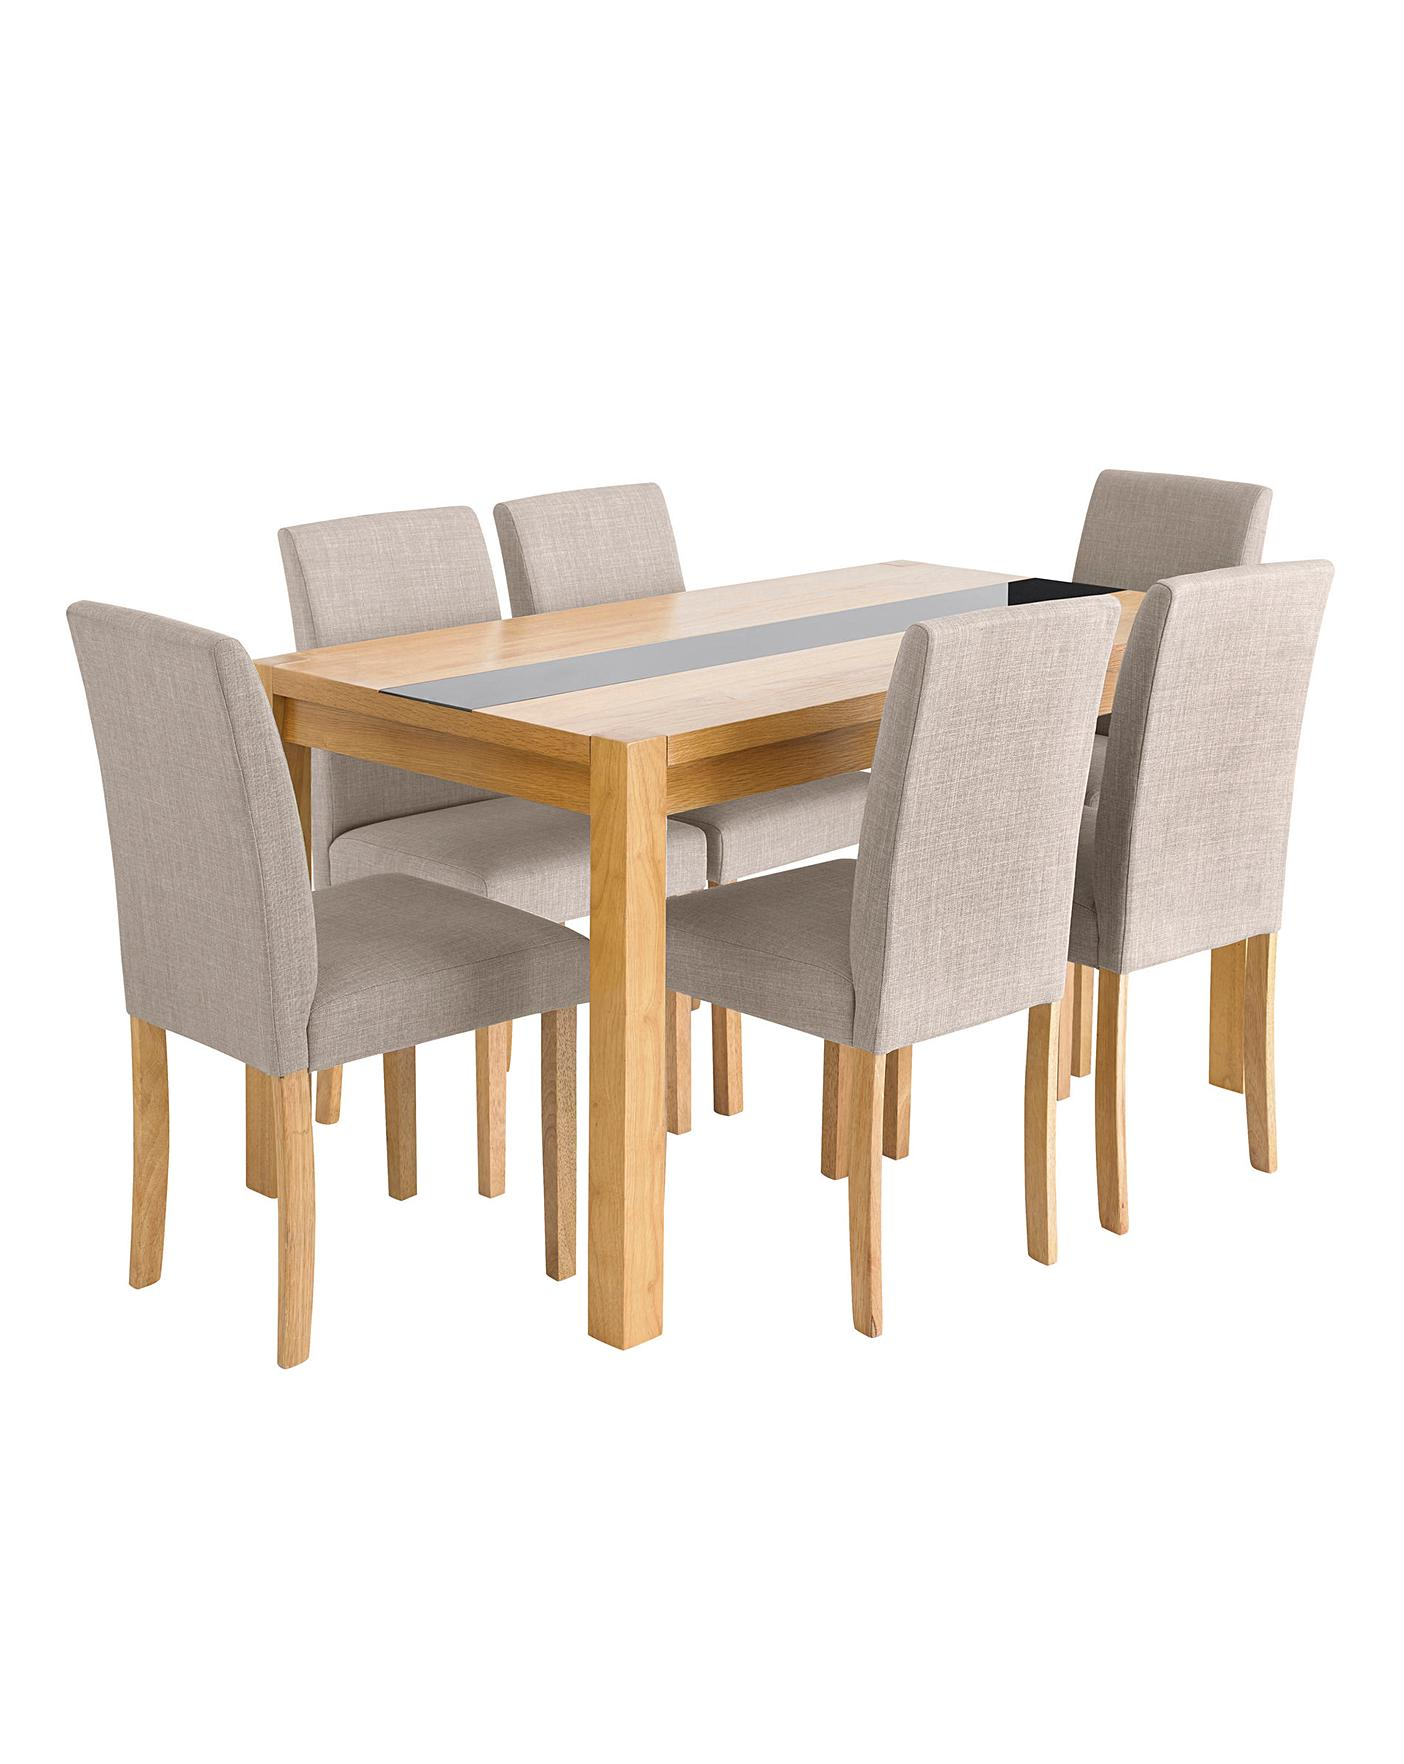 Brilliant Oakham Glass Panel Dining Table 6 Chairs Download Free Architecture Designs Intelgarnamadebymaigaardcom